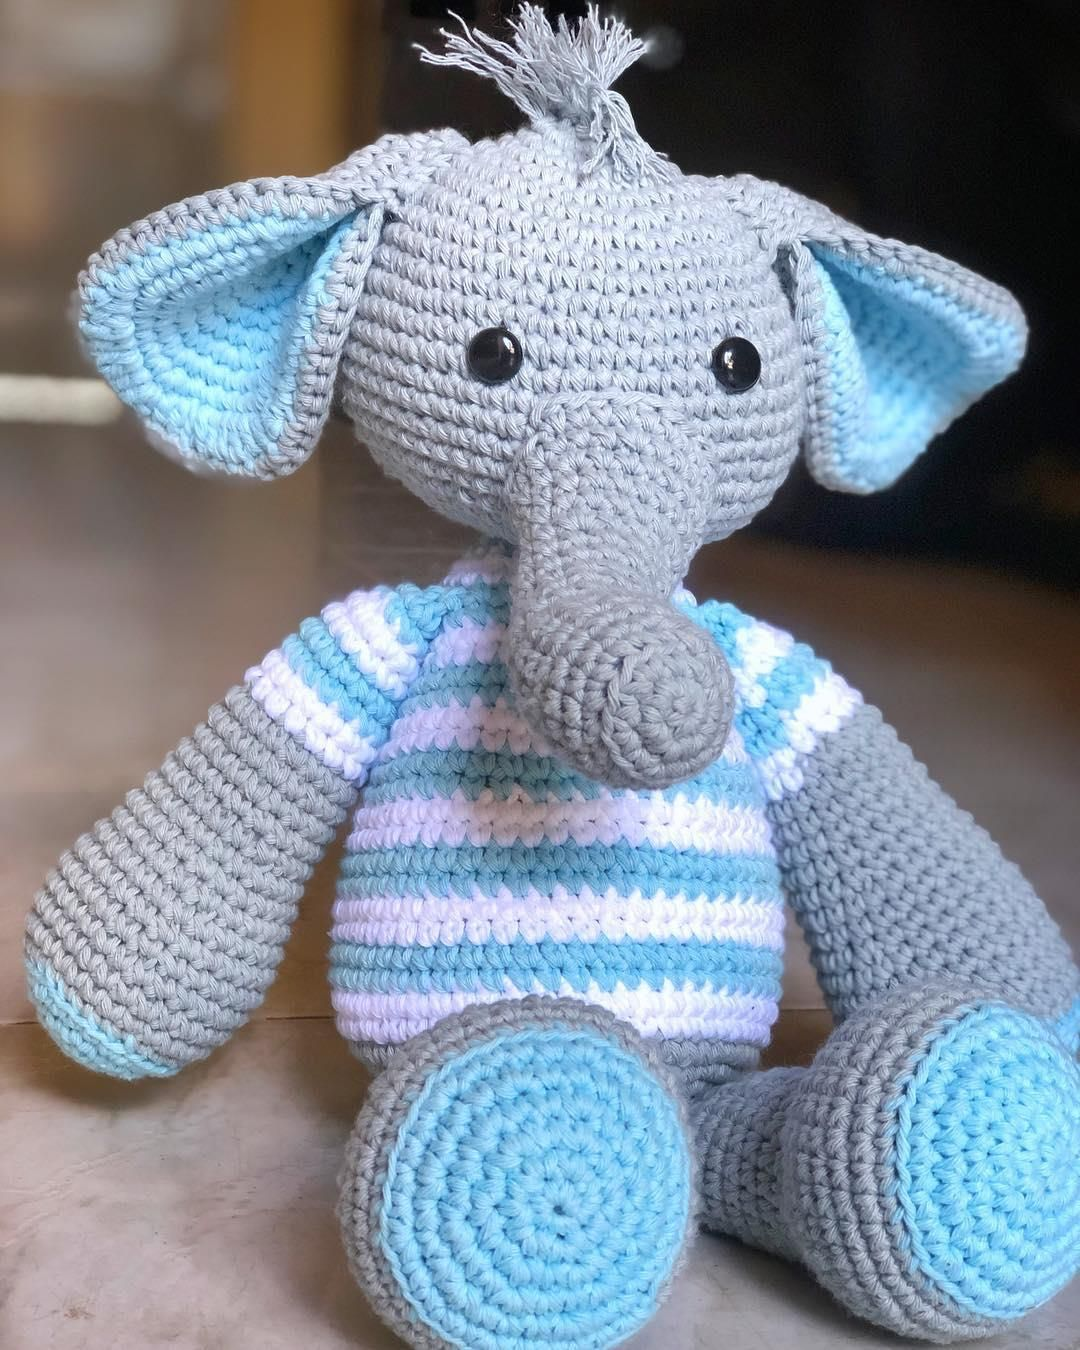 Amigurumi Today - Page 2 of 11 - Free amigurumi patterns and ... | 1350x1080